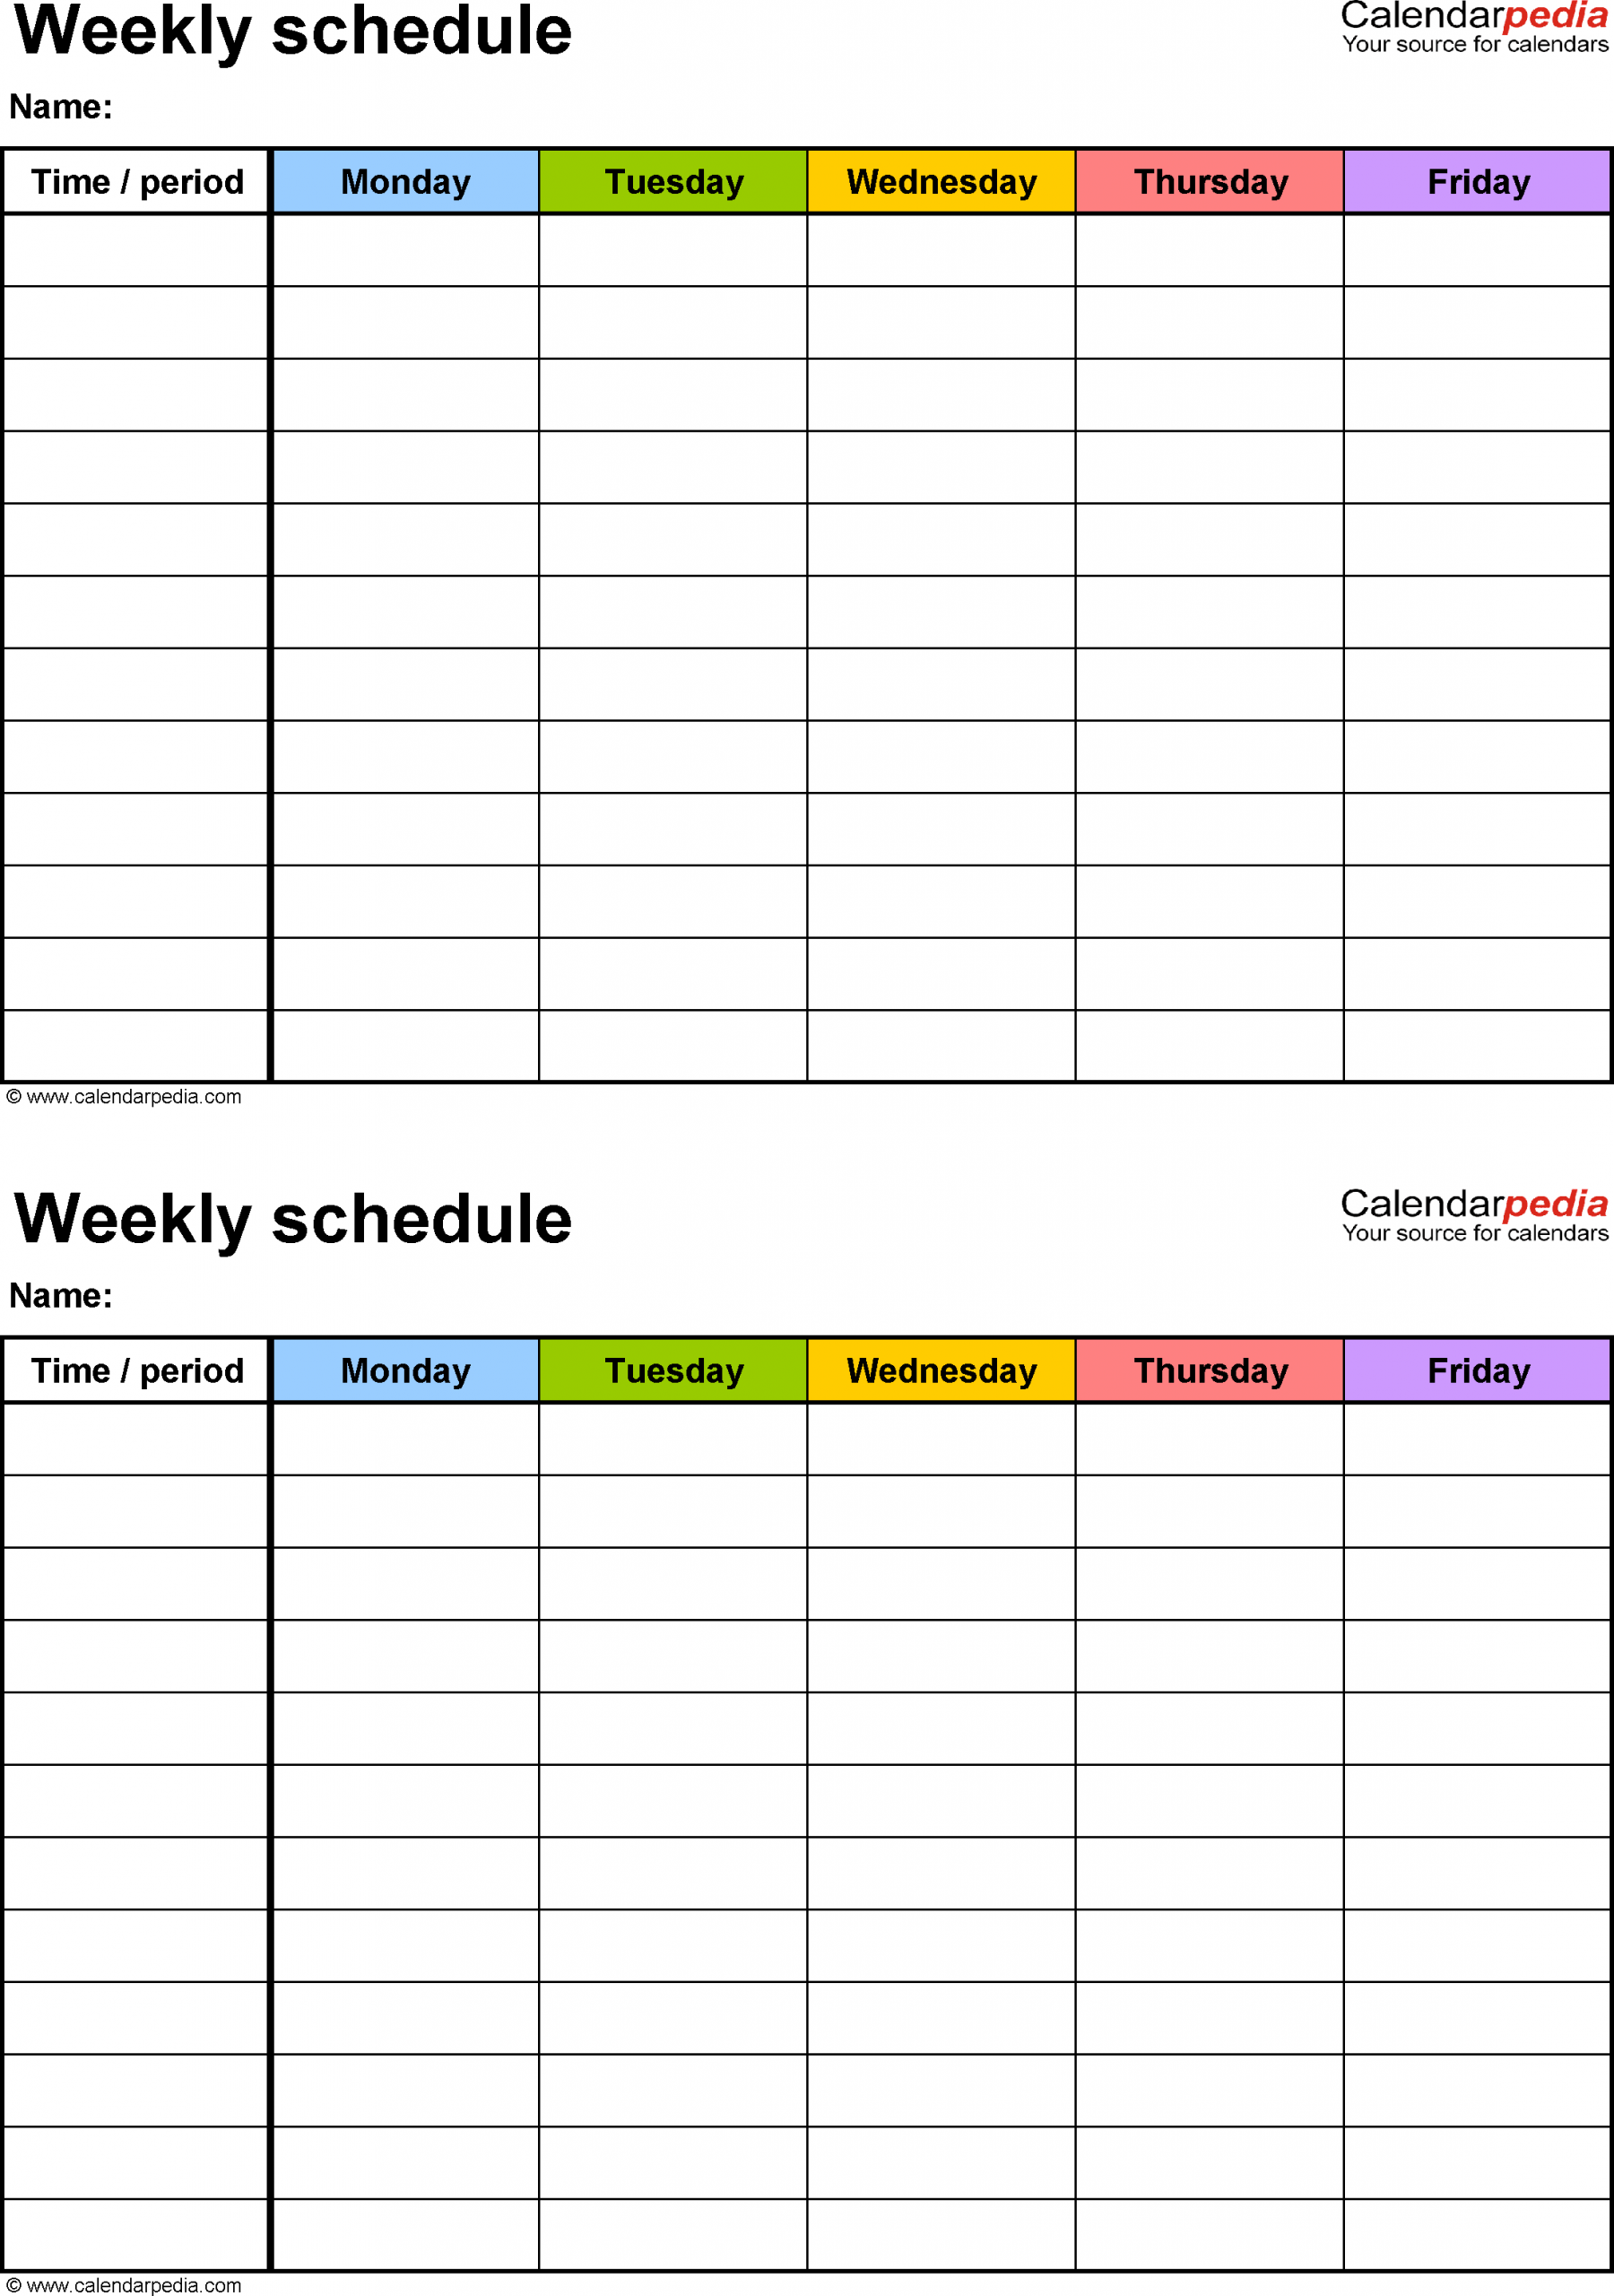 Weekly Schedule Template For Excel Version 3: 2 Schedules Free Daily Calendar Monday Through Friday